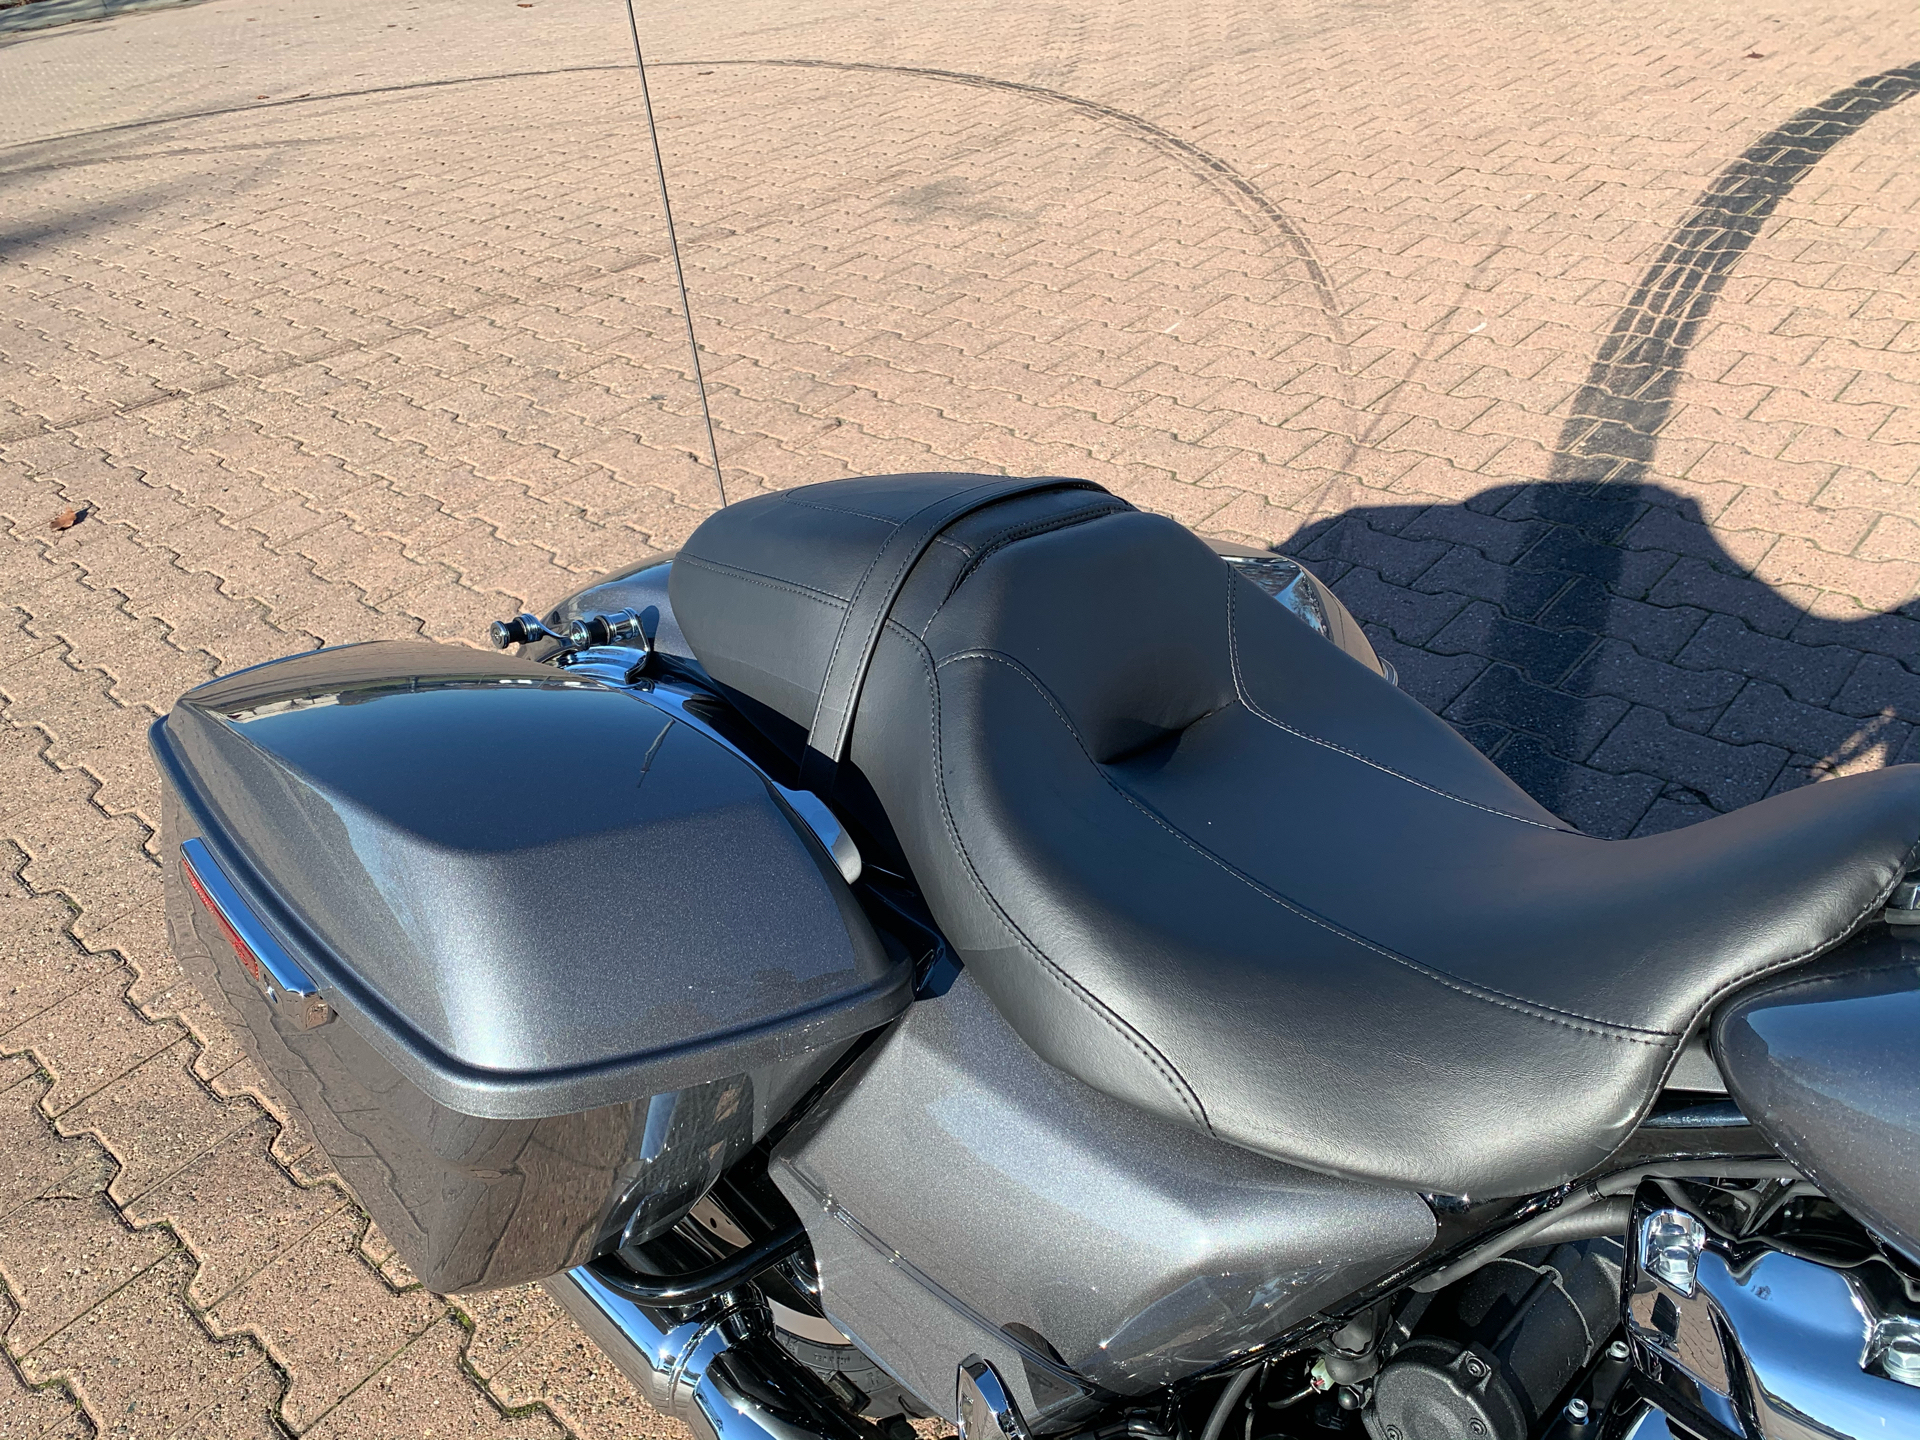 2021 Harley-Davidson Road Glide in Vacaville, California - Photo 9